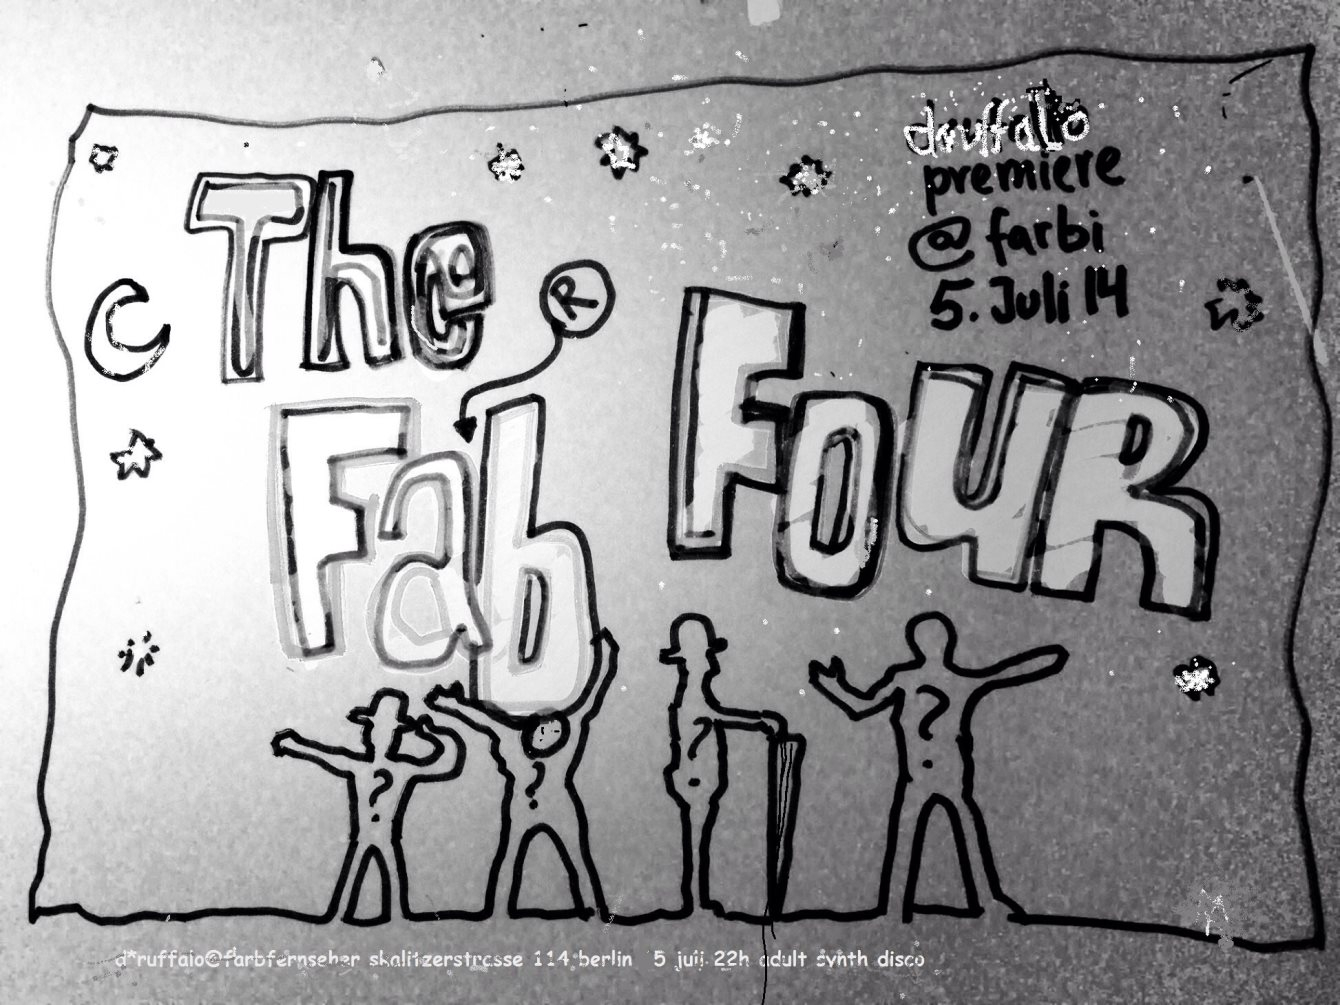 Druffalo Hit Squad presents The Farb Four - Flyer front